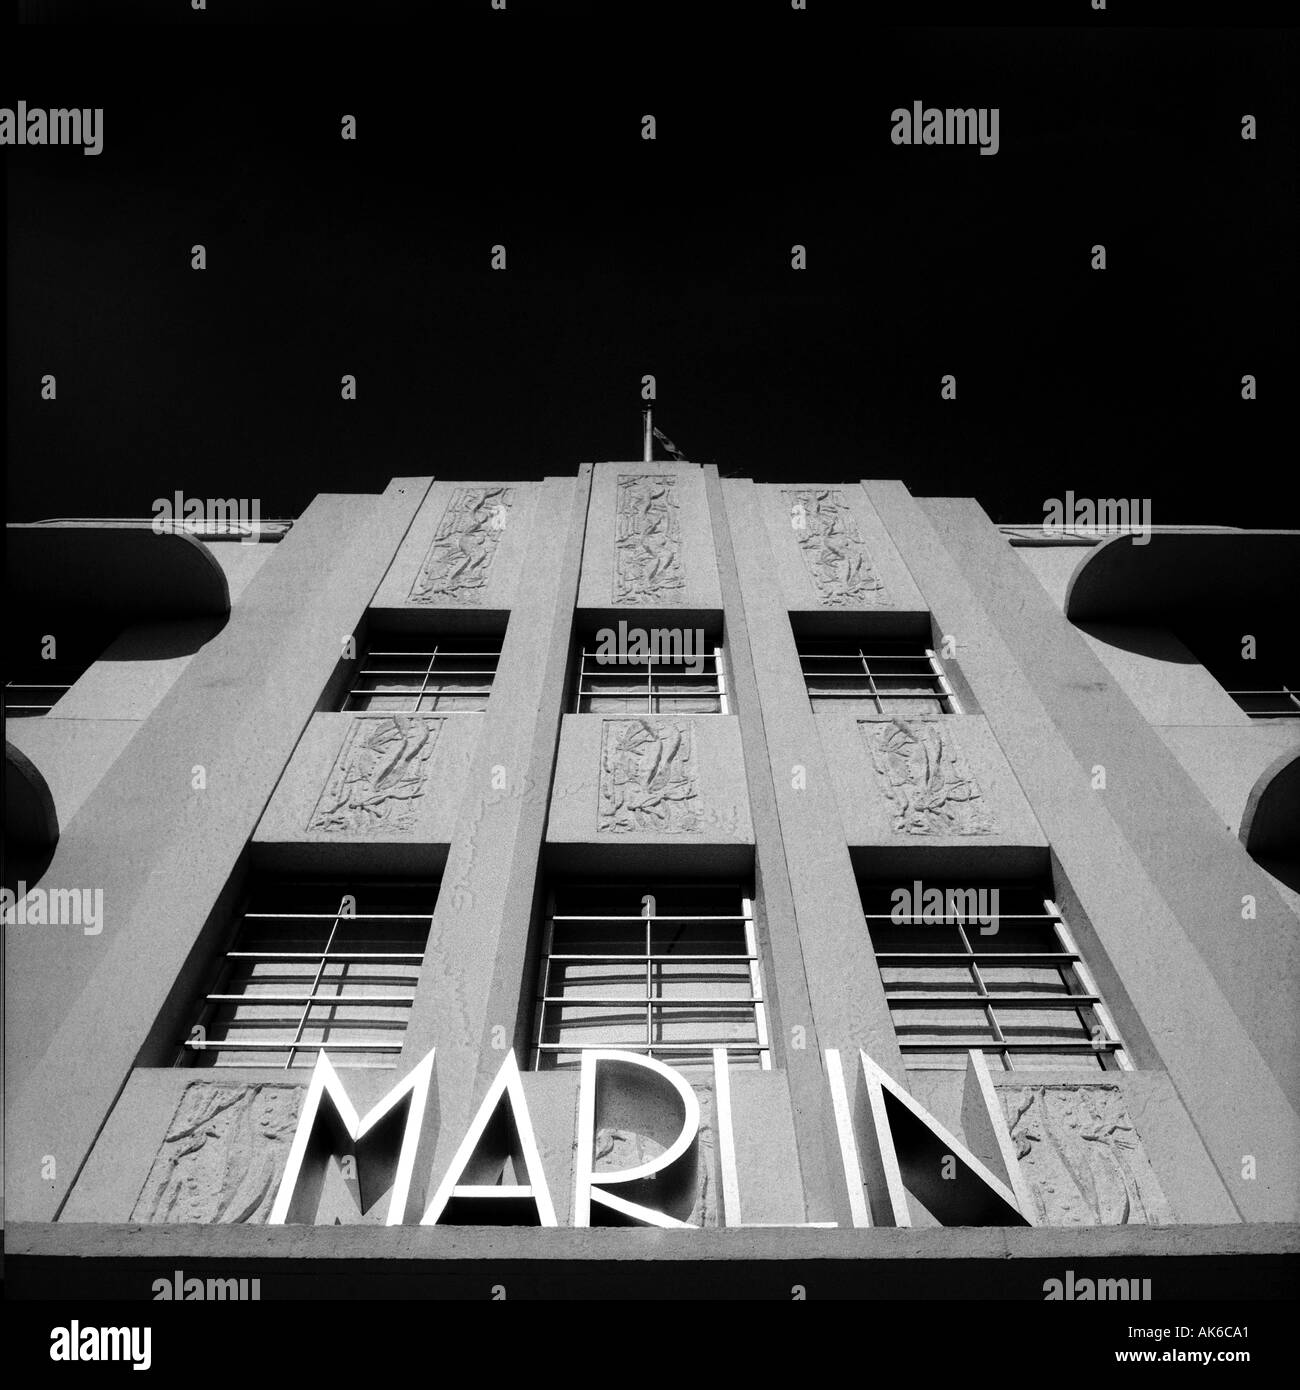 Façade de l'hôtel Marlin à Miami s quartier Art déco de South Beach Photo Stock